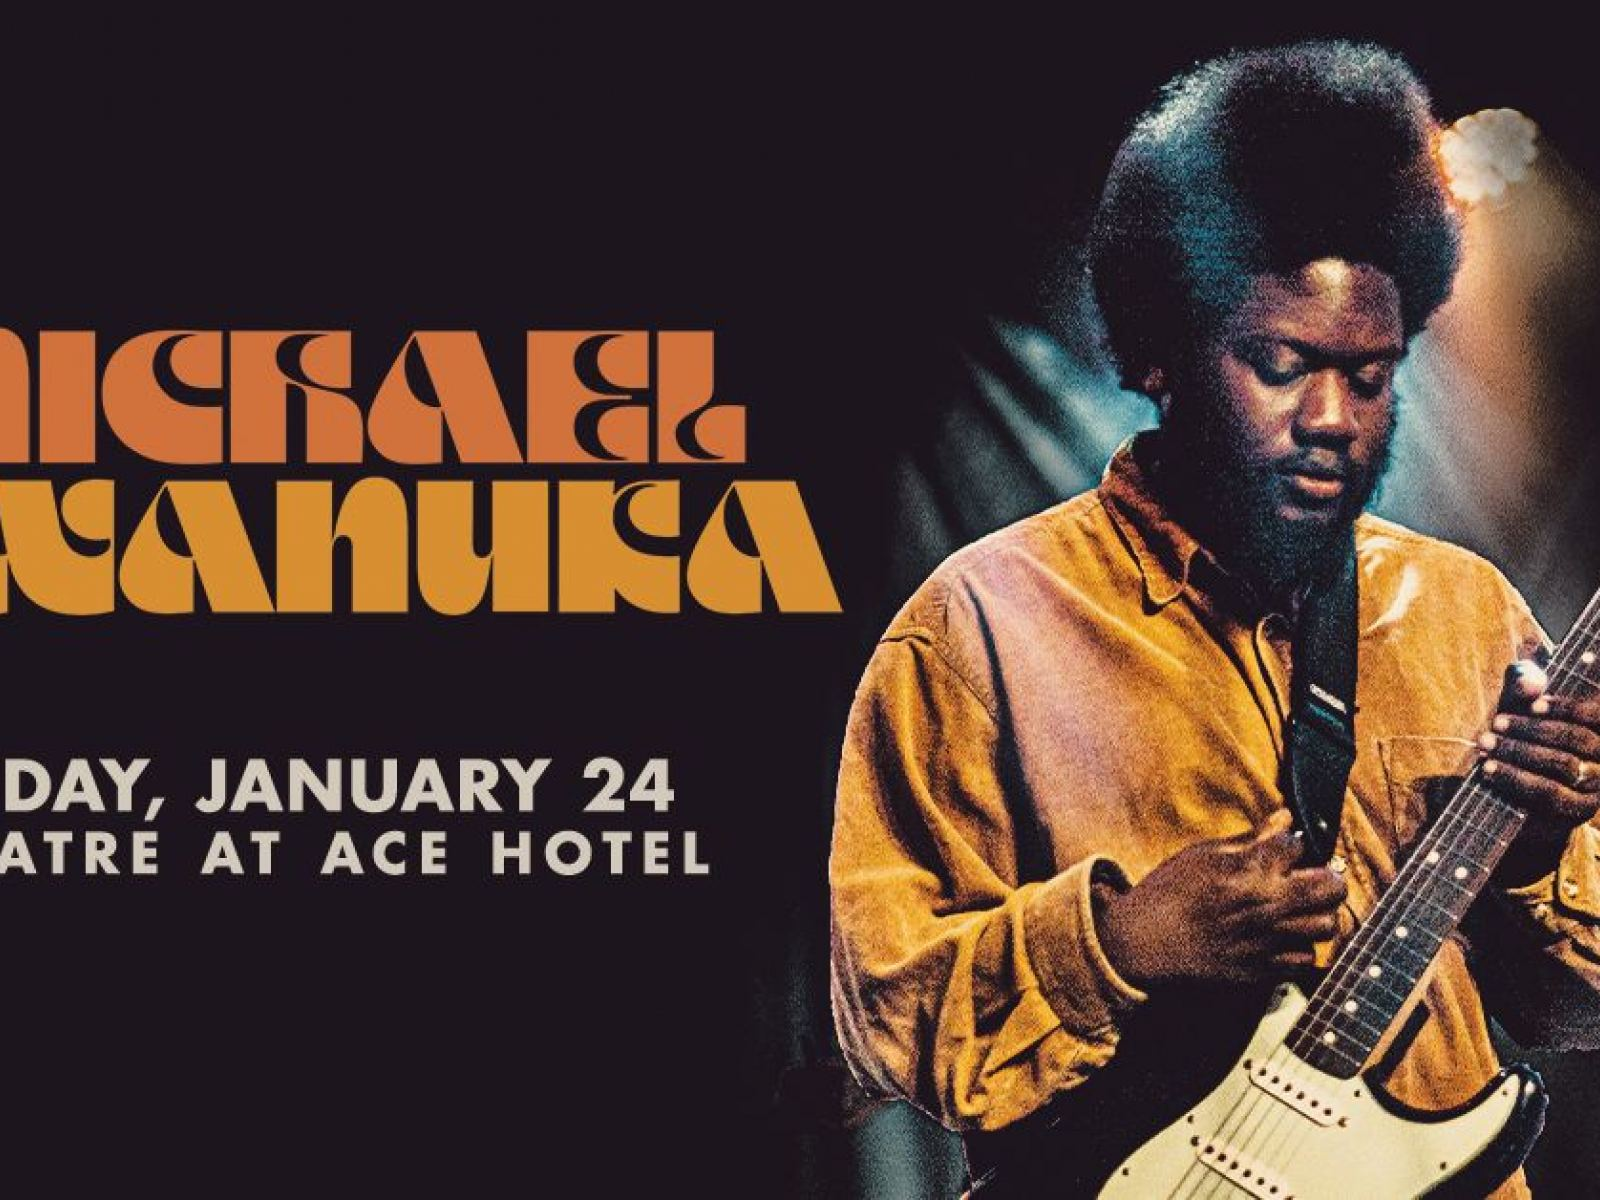 Main image for event titled Michael Kiwanuka